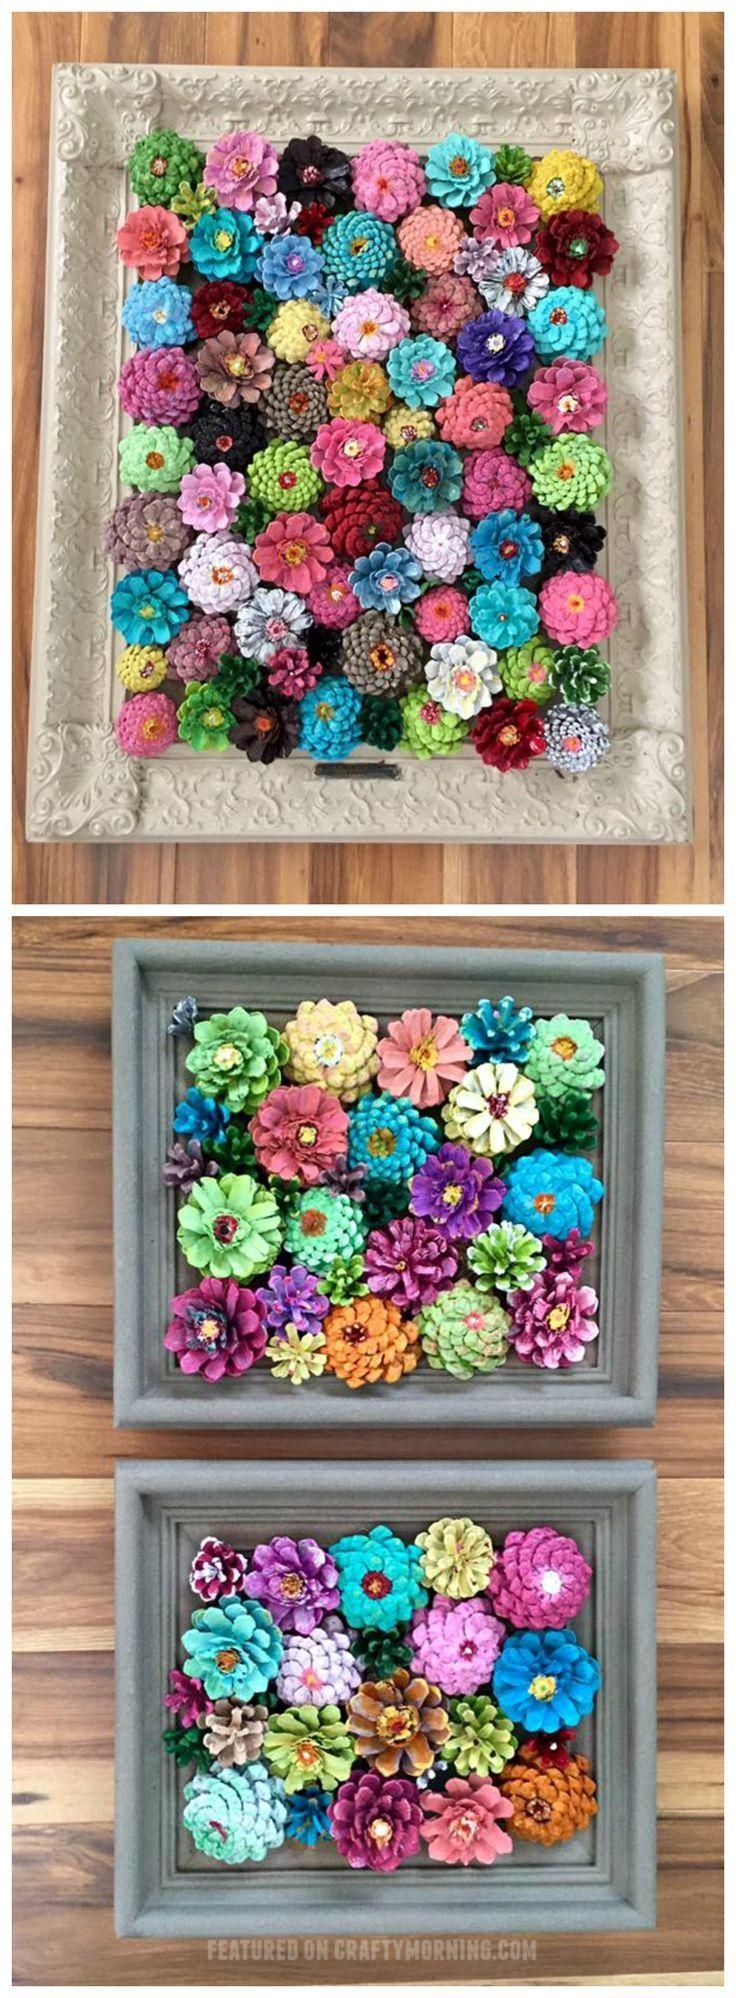 Best 25+ Pine Cone Art Ideas On Pinterest | Pinecone Crafts Kids With Pine Cone Wall Art (Image 4 of 20)